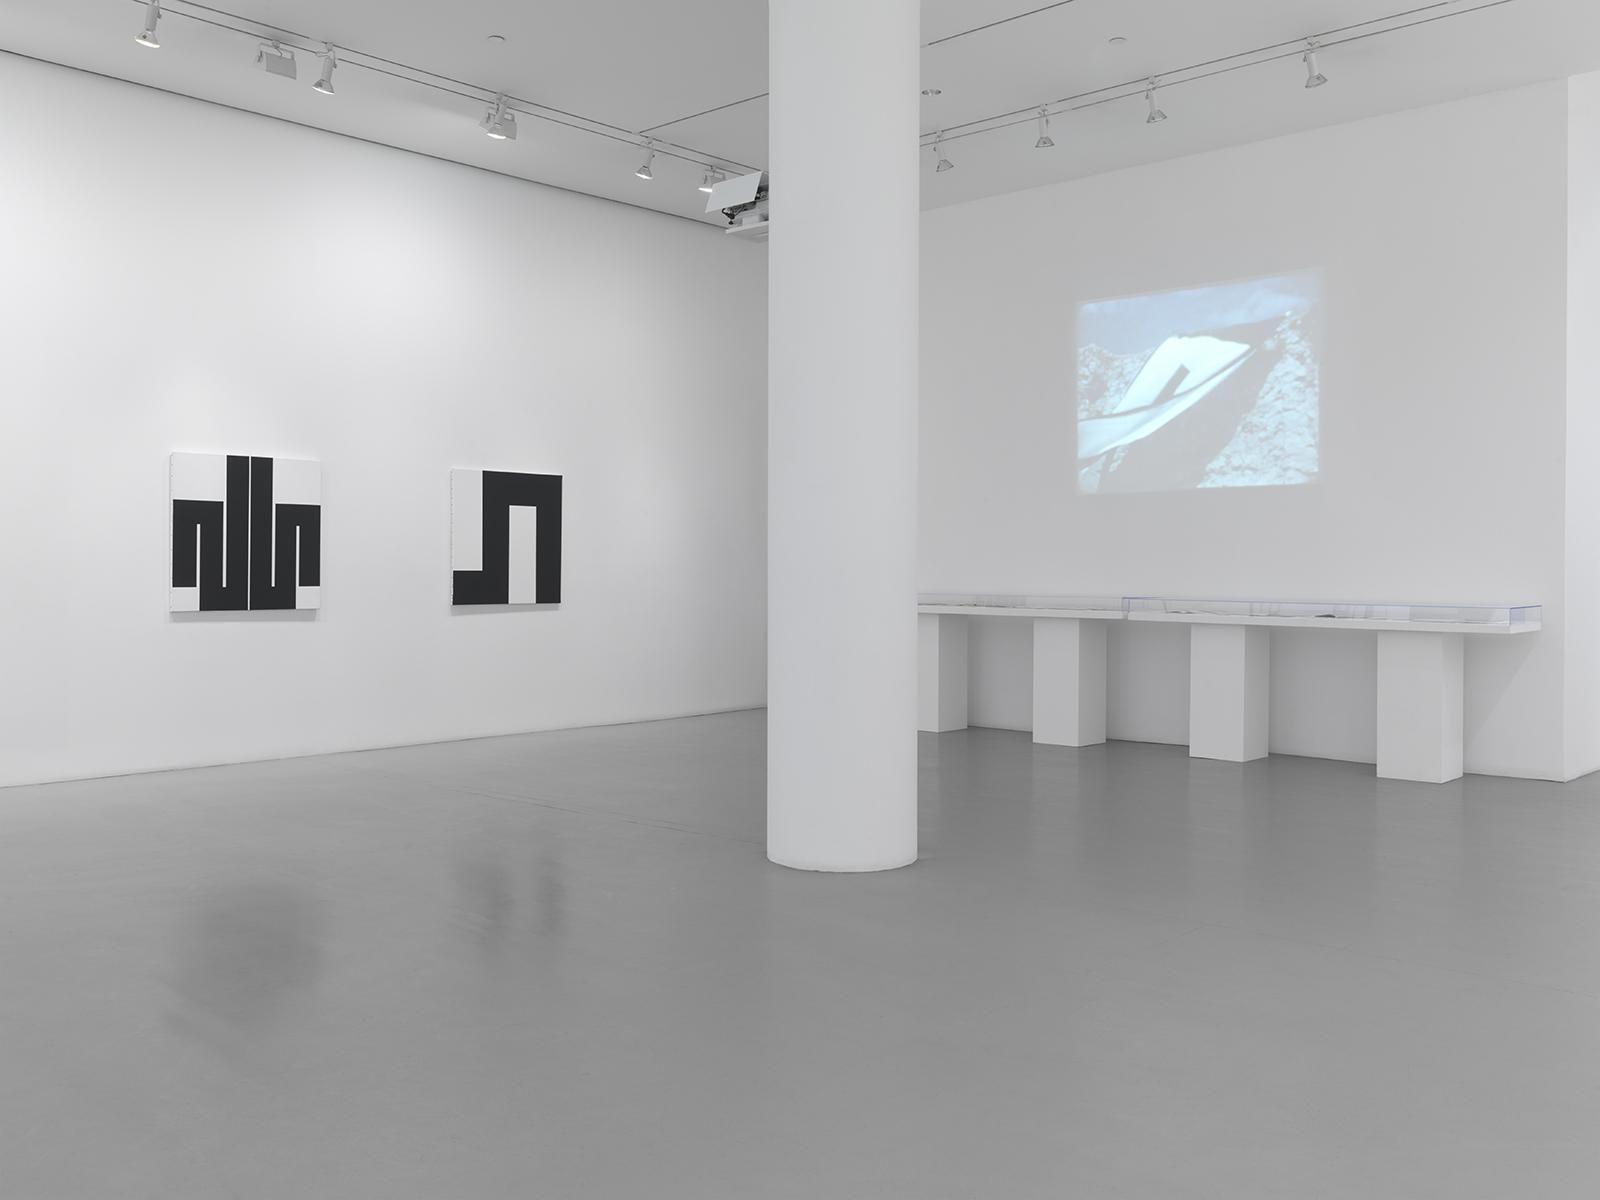 JULIJE KNIFER Installation view at Mitchell-Innes & Nash, NY, 2014